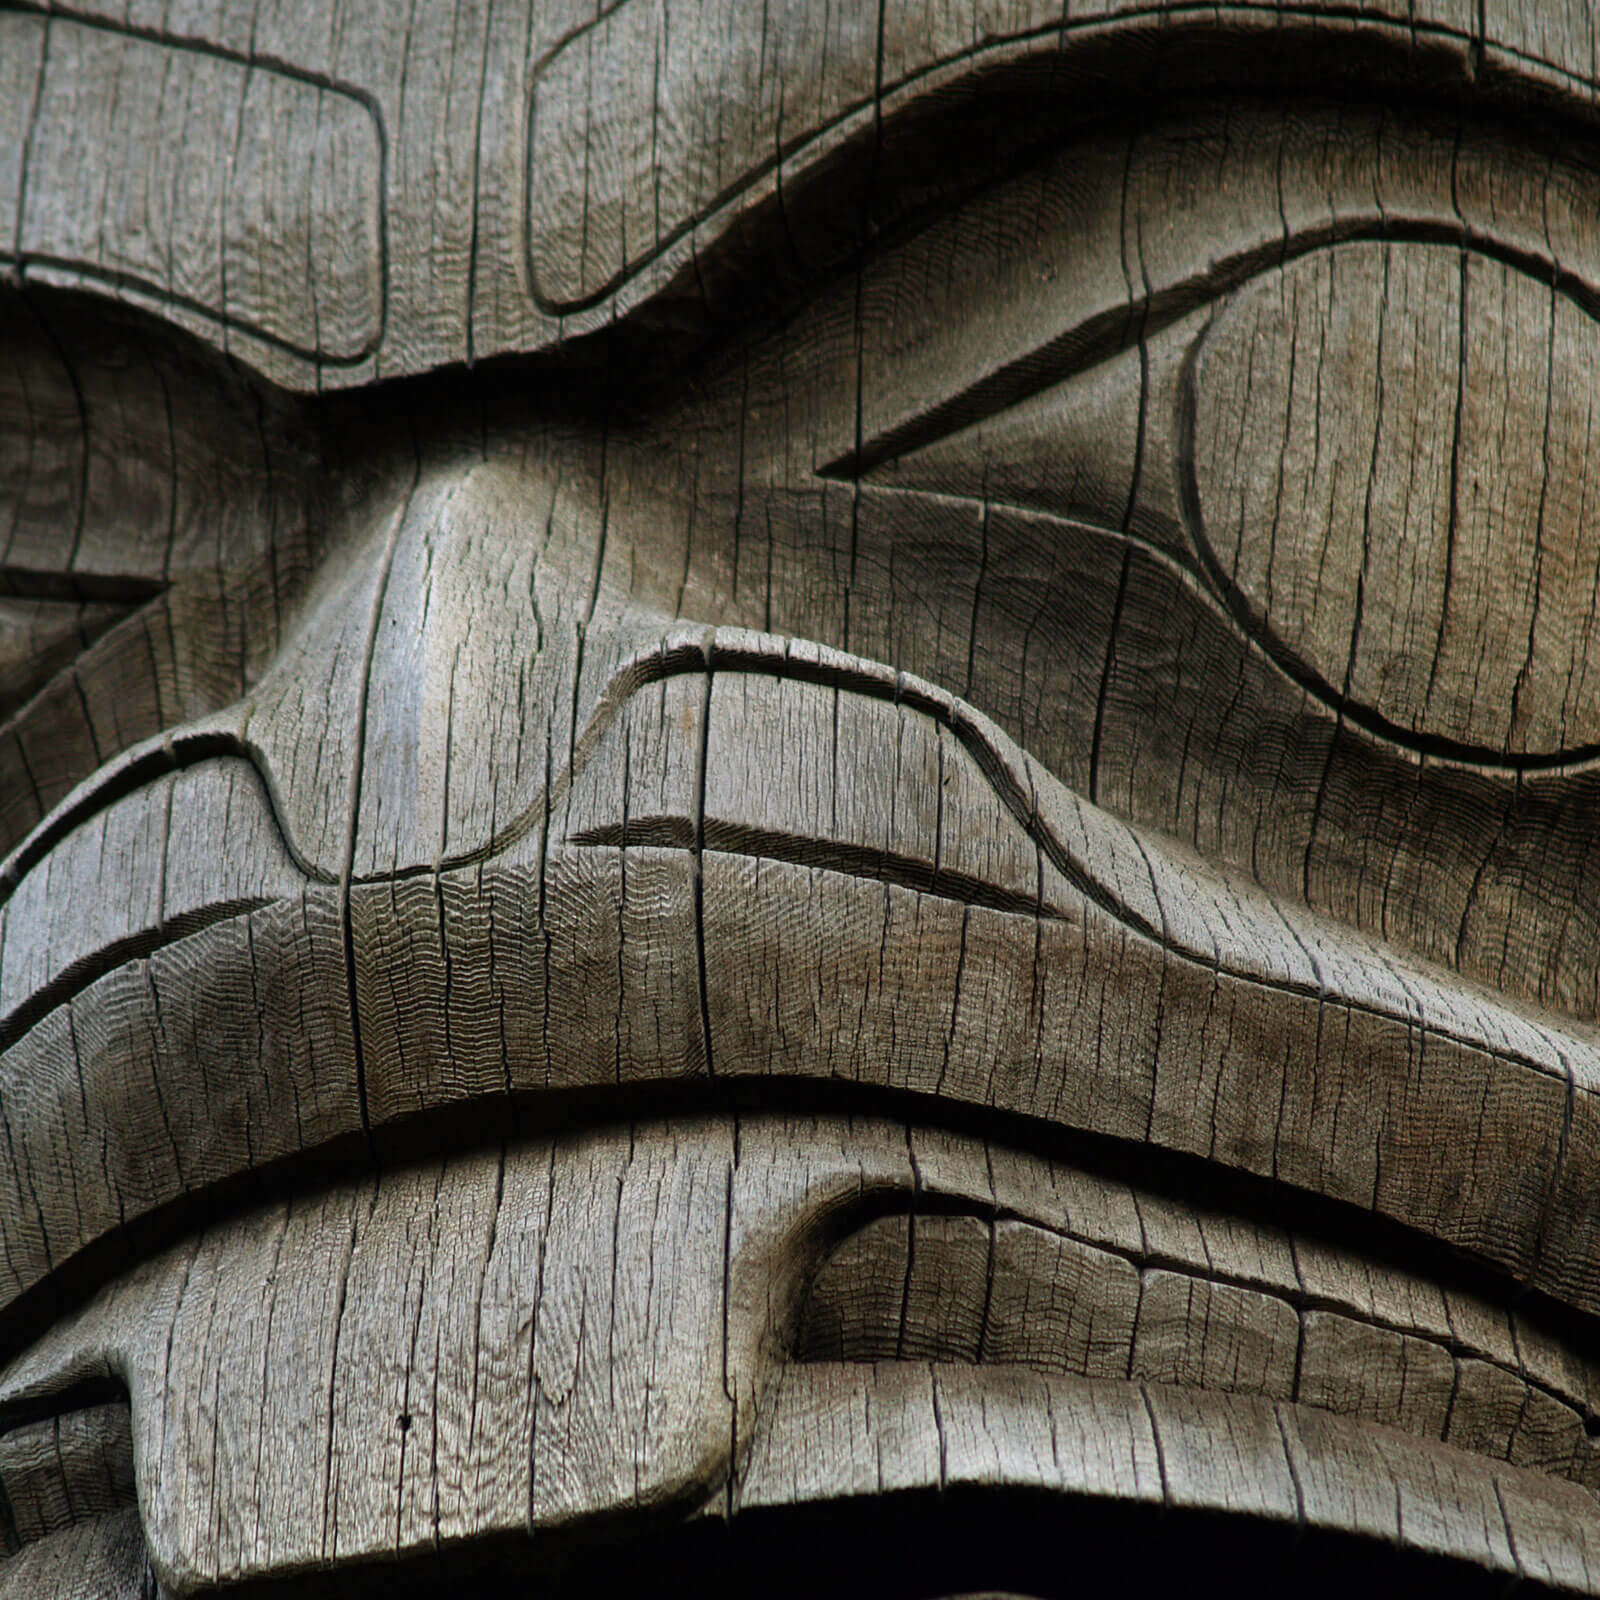 a close up view of a wooden carved totem pole animal face